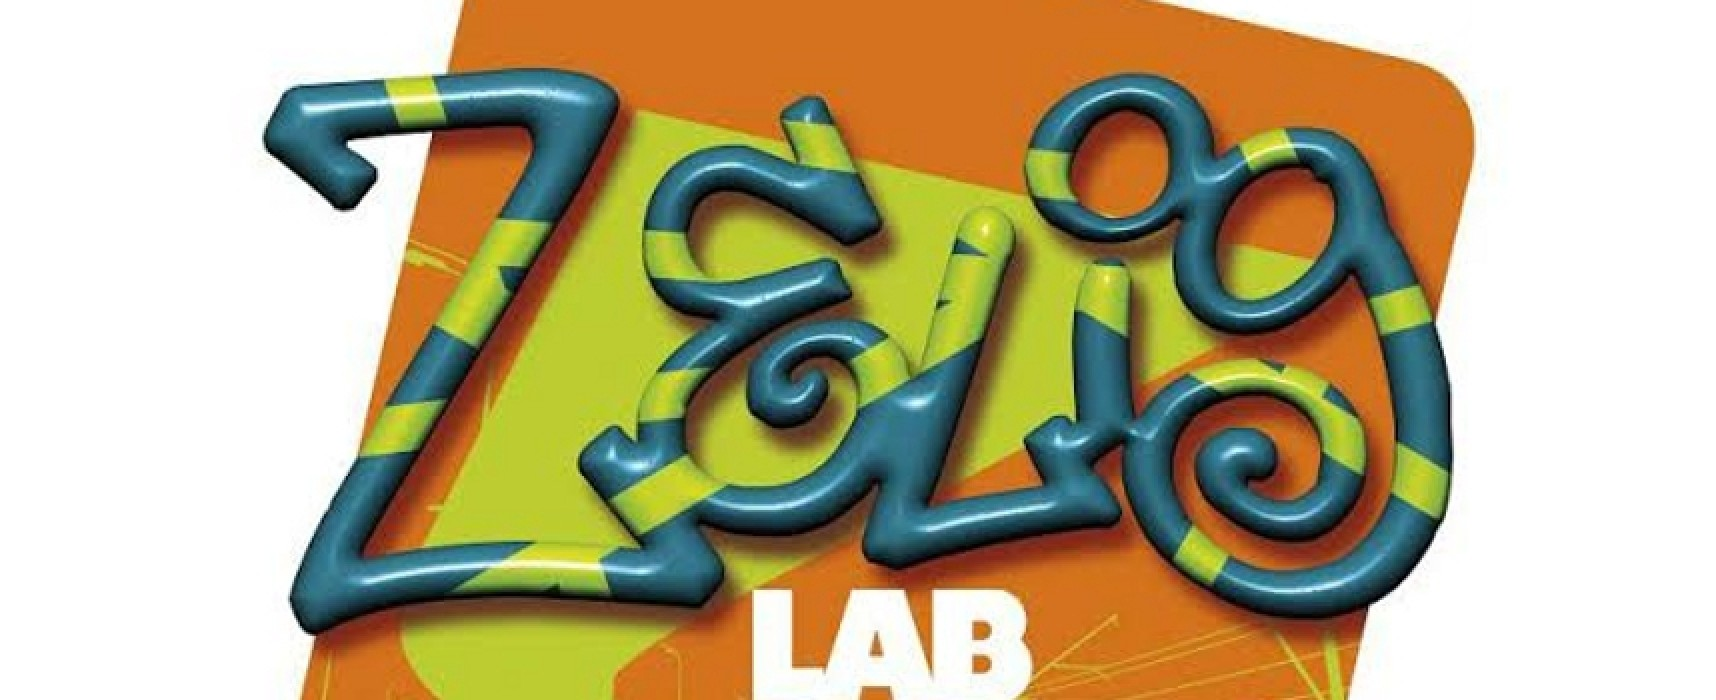 Zelig Lab, oggi ultimo appuntamento al circolo Open Source